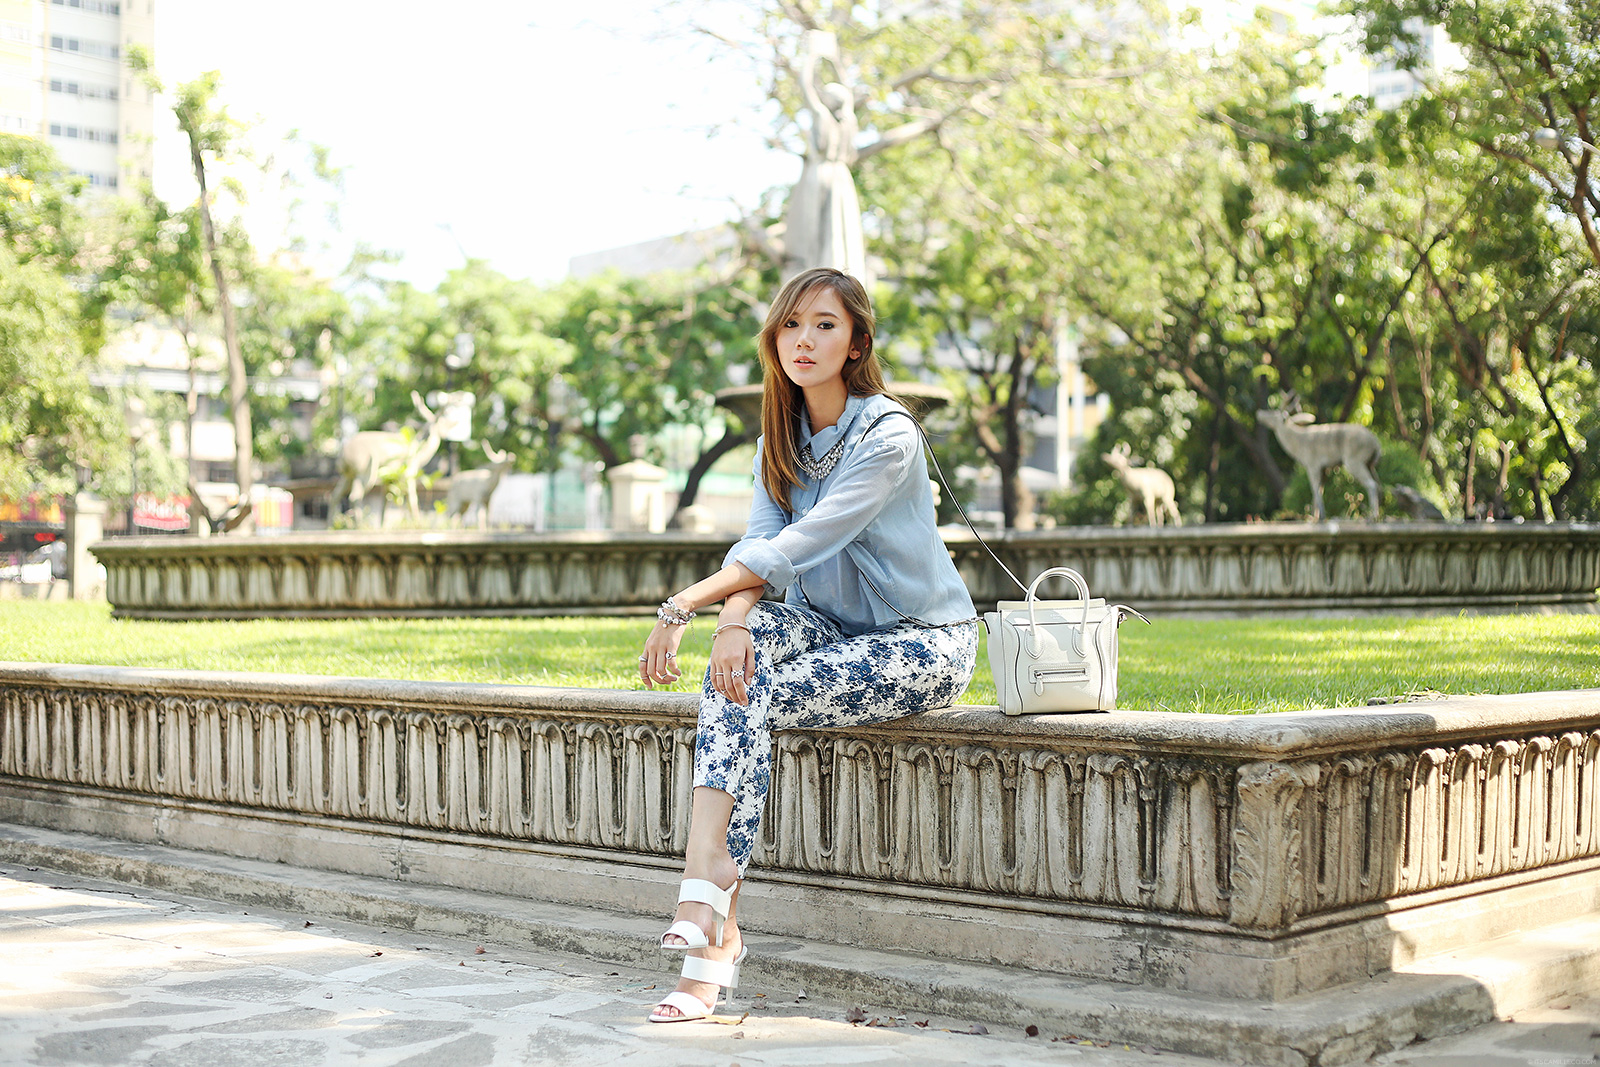 Freshgear Jeans and Emoda Fashion | itscamilleco.com